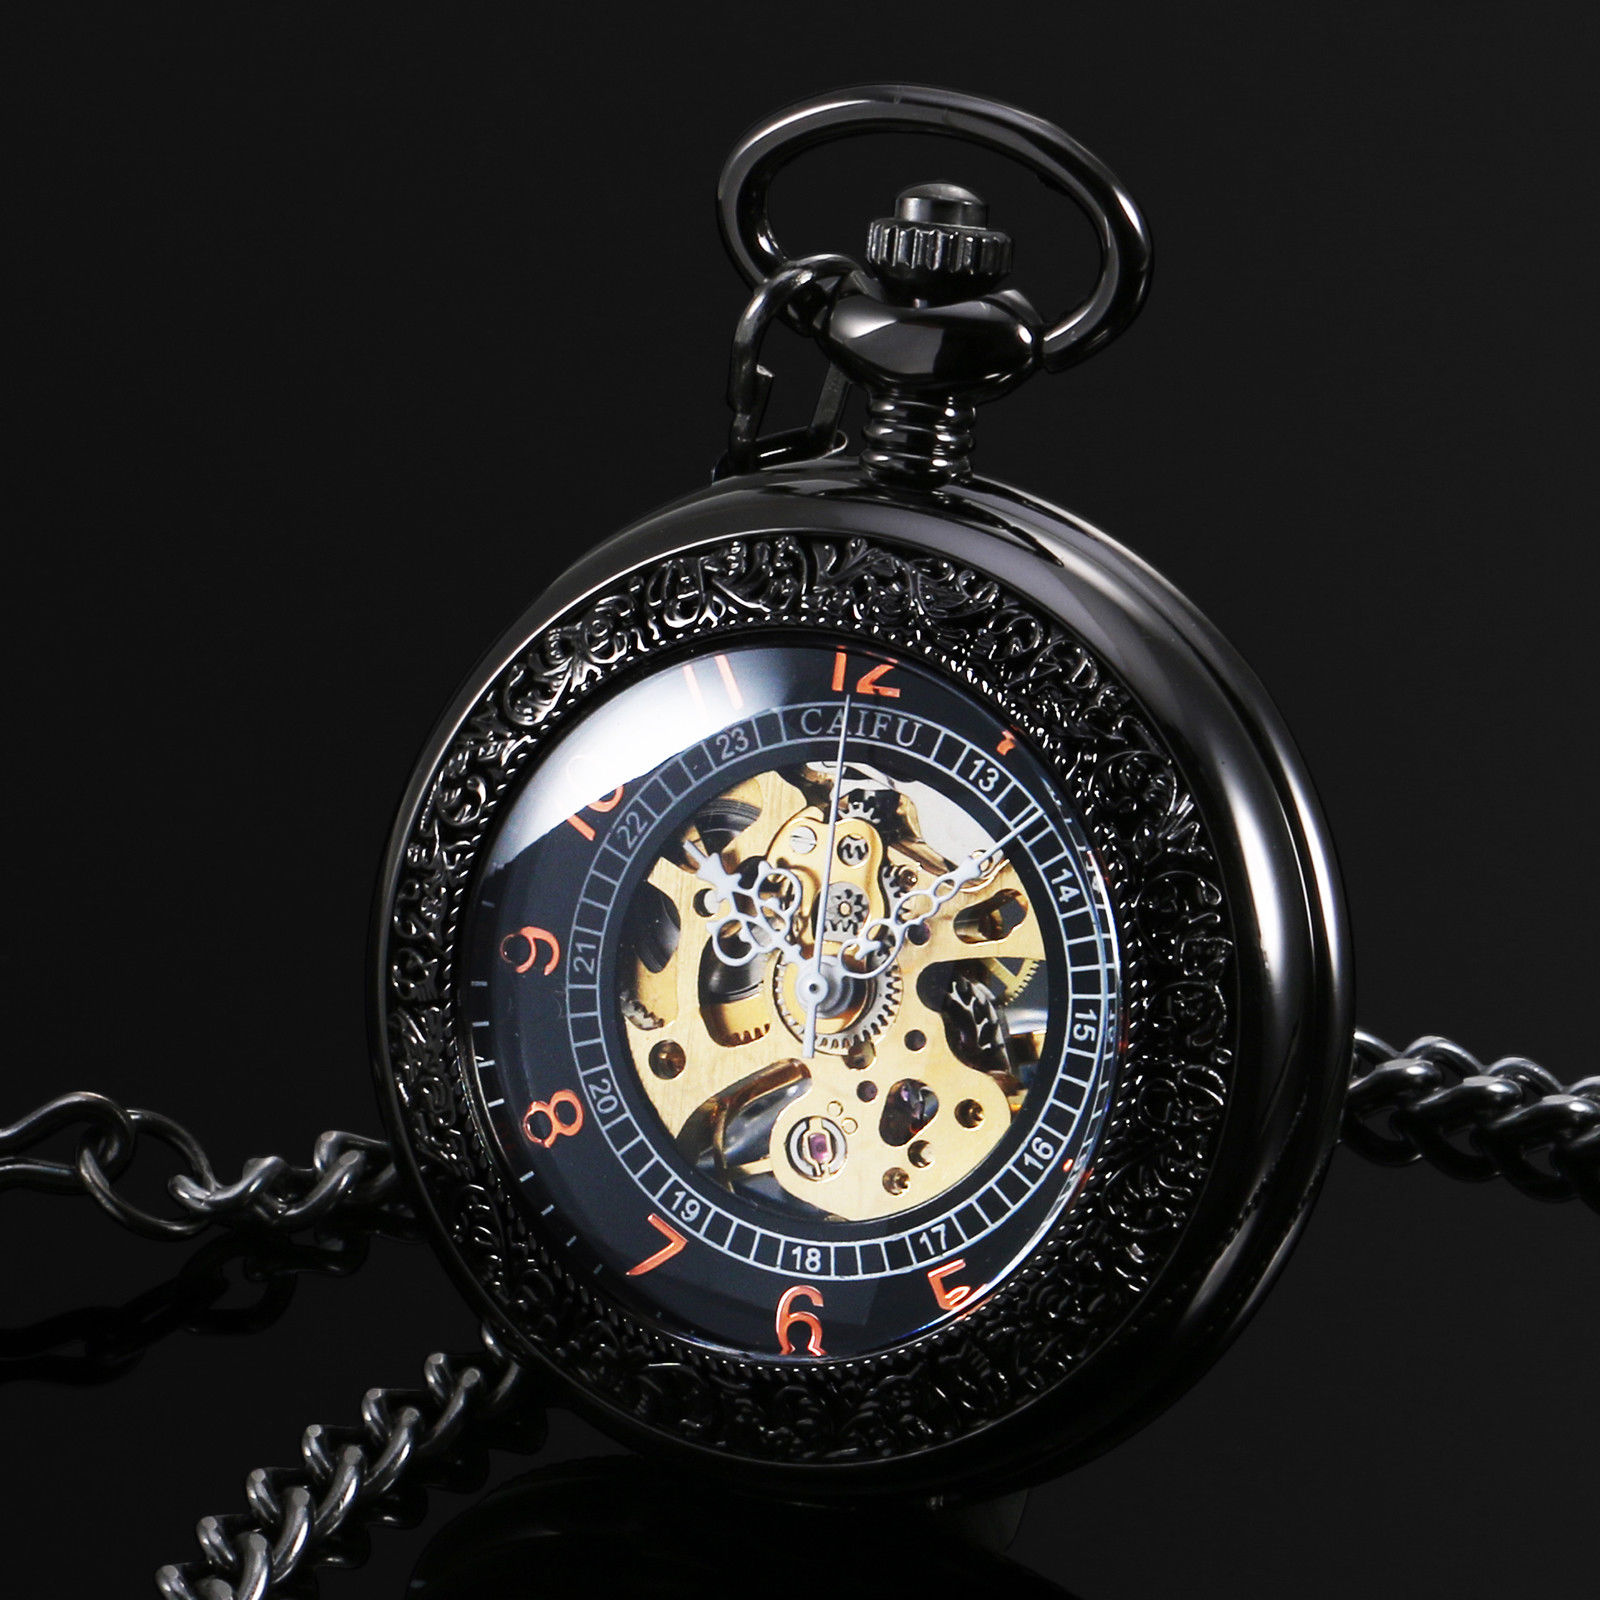 19a93978e New Arrival CAIFU Brand Black See Through Mechanical Mens Pocket Watch  Black Dial Arabic Number Hand Wind Watch w/Chain Gift